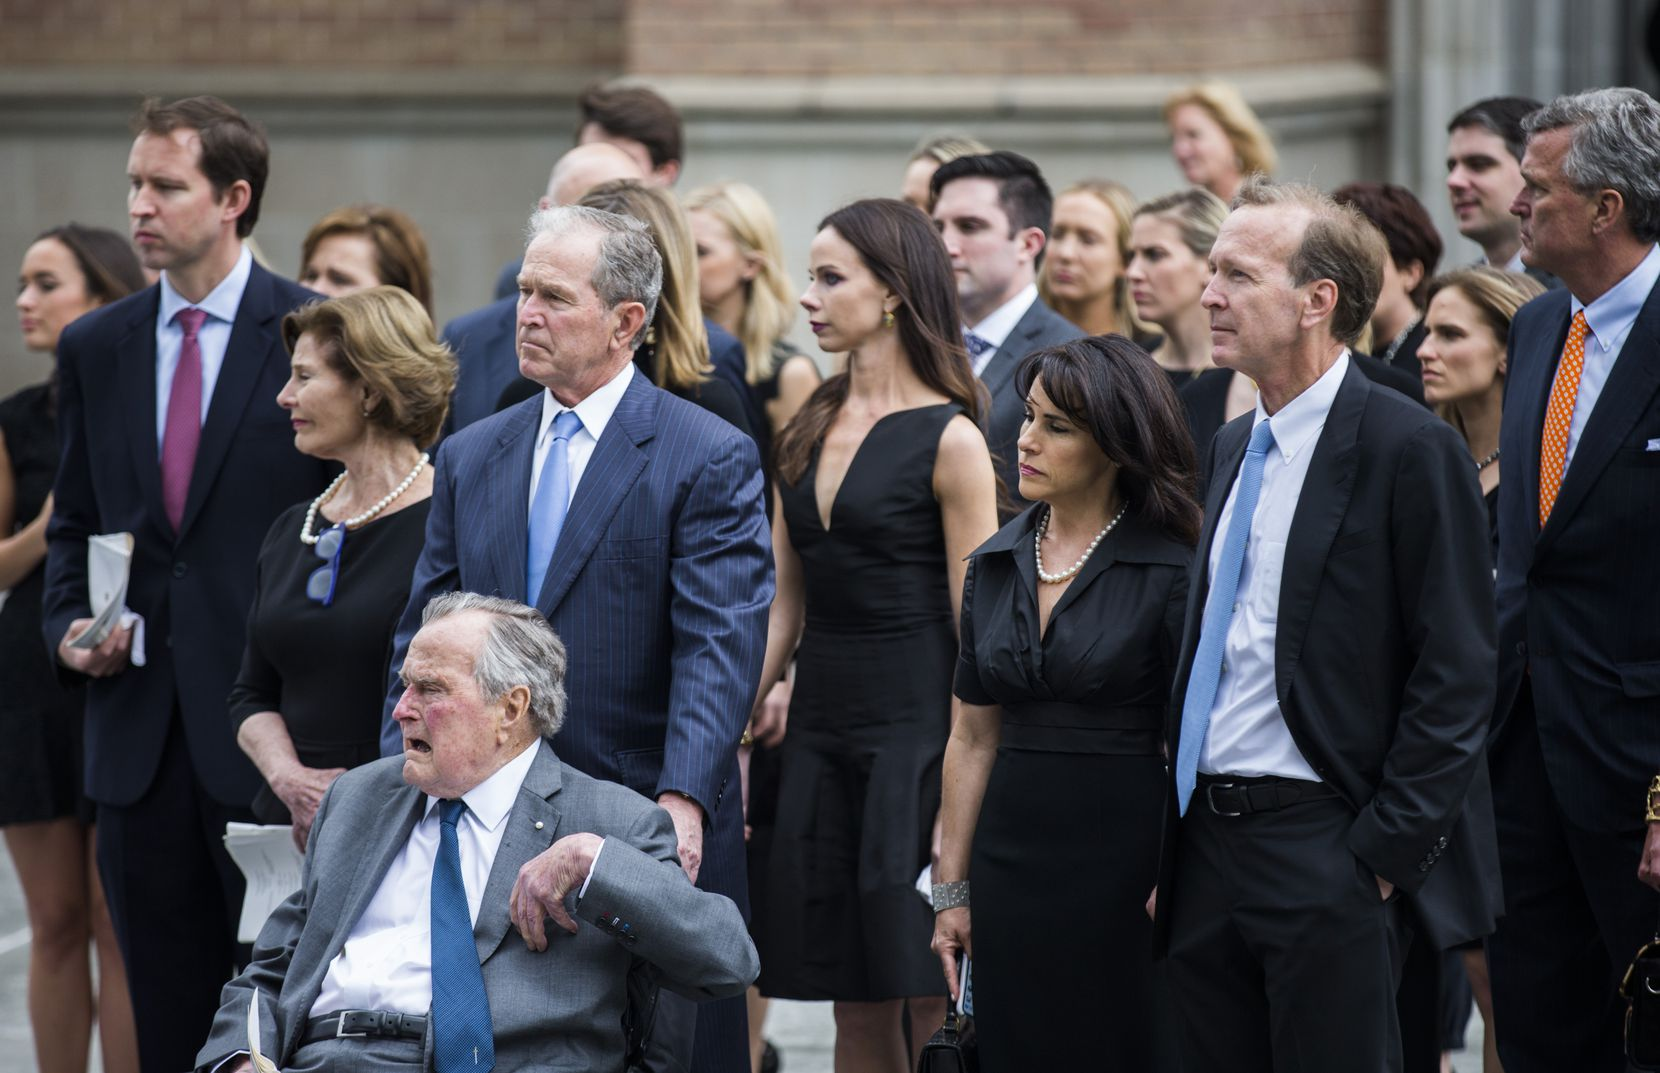 Former President George W. Bush escorts his father, former President George H.W. Bush, out of St. Martin's Episcopal Church in Houston. They had attended the funeral for former first lady Barbara Bush with family members including former first lady Laura Bush.